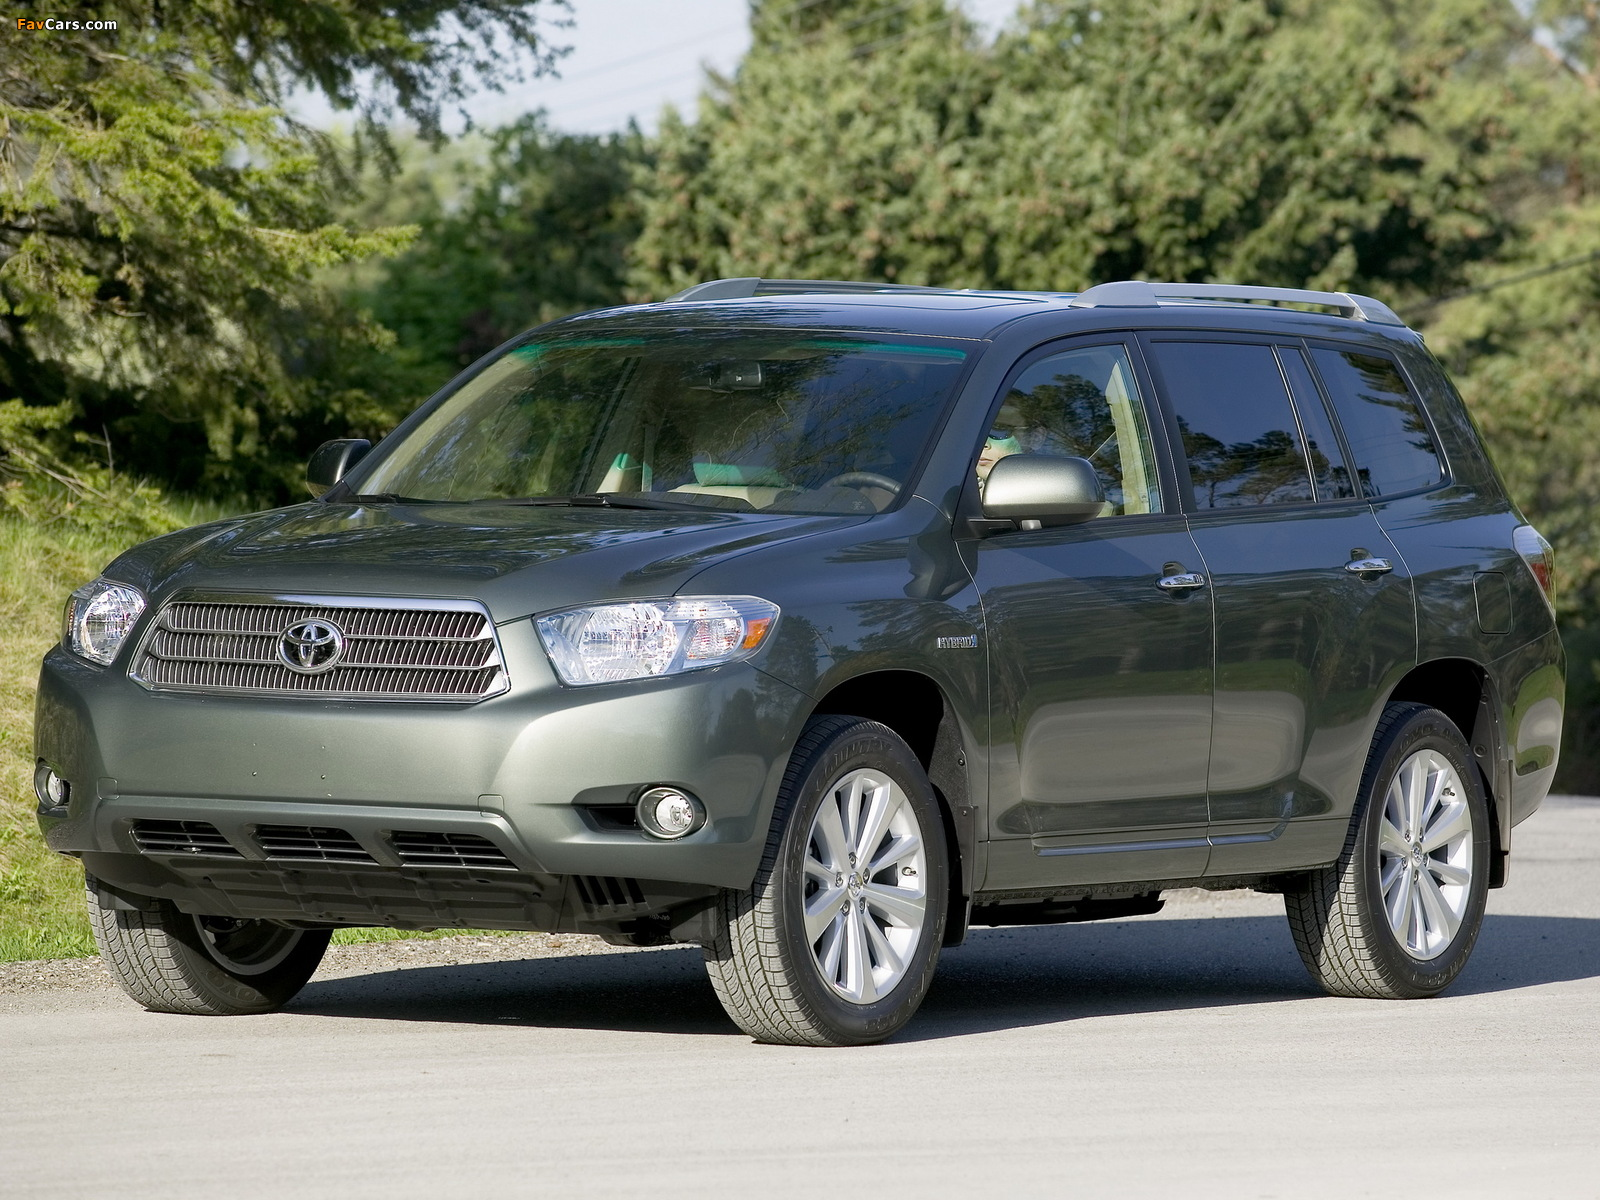 Pictures Of Toyota Highlander Hybrid 2007 10 1600x1200